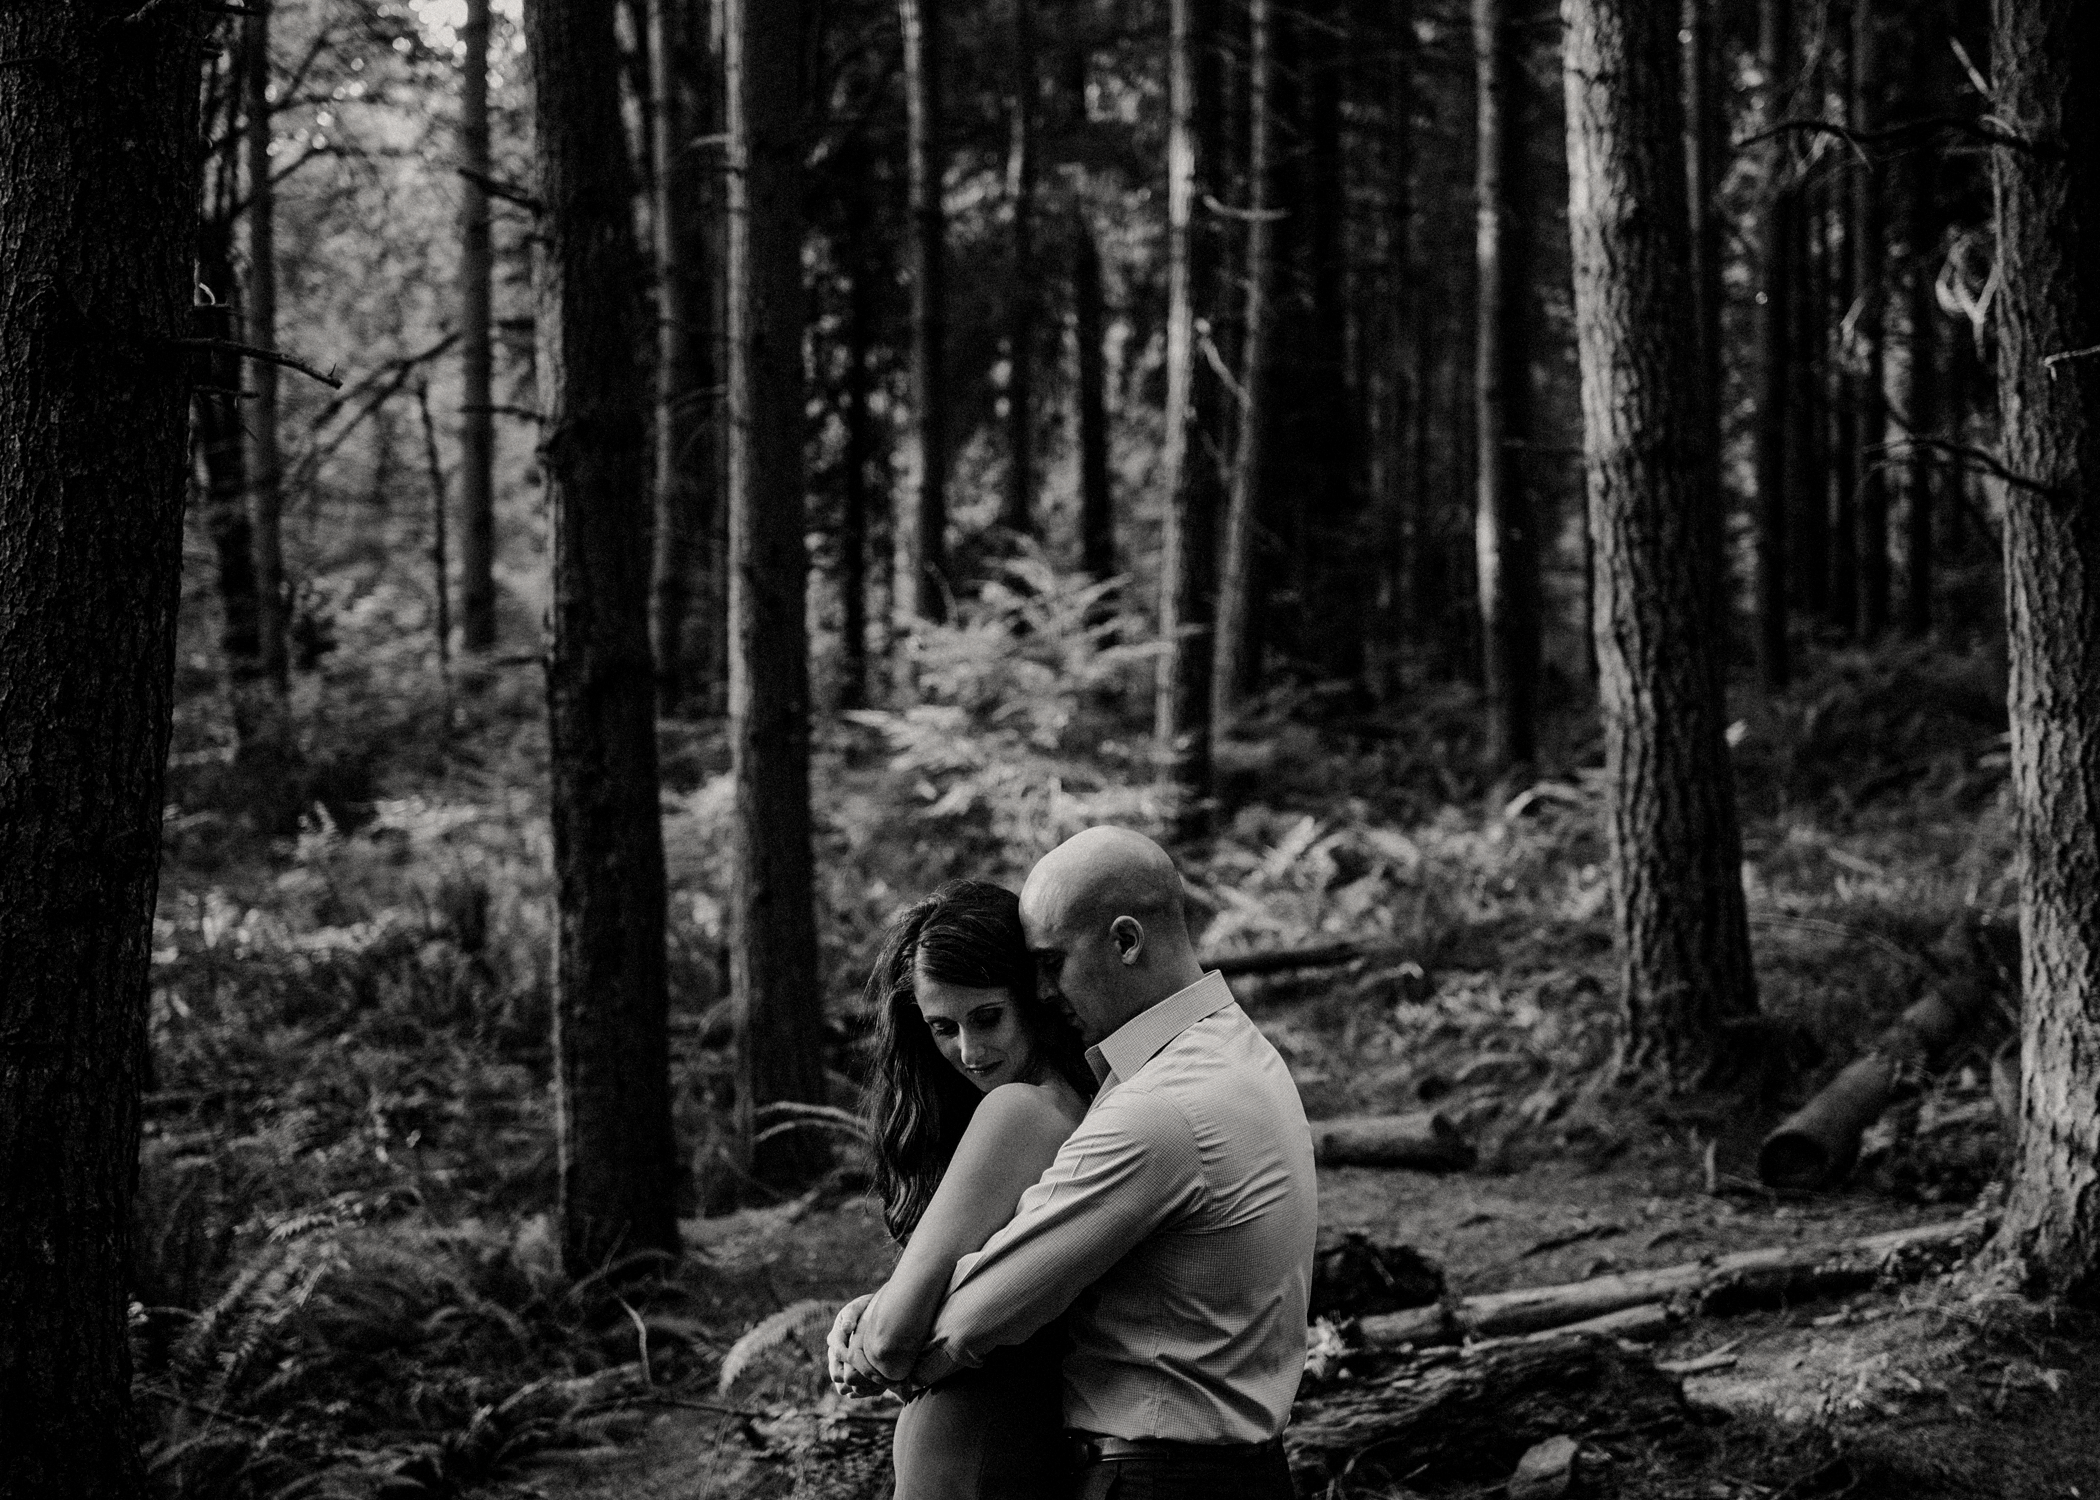 004-kaoverii-silva-AJ-prewedding-vancouver-photography-blog.png